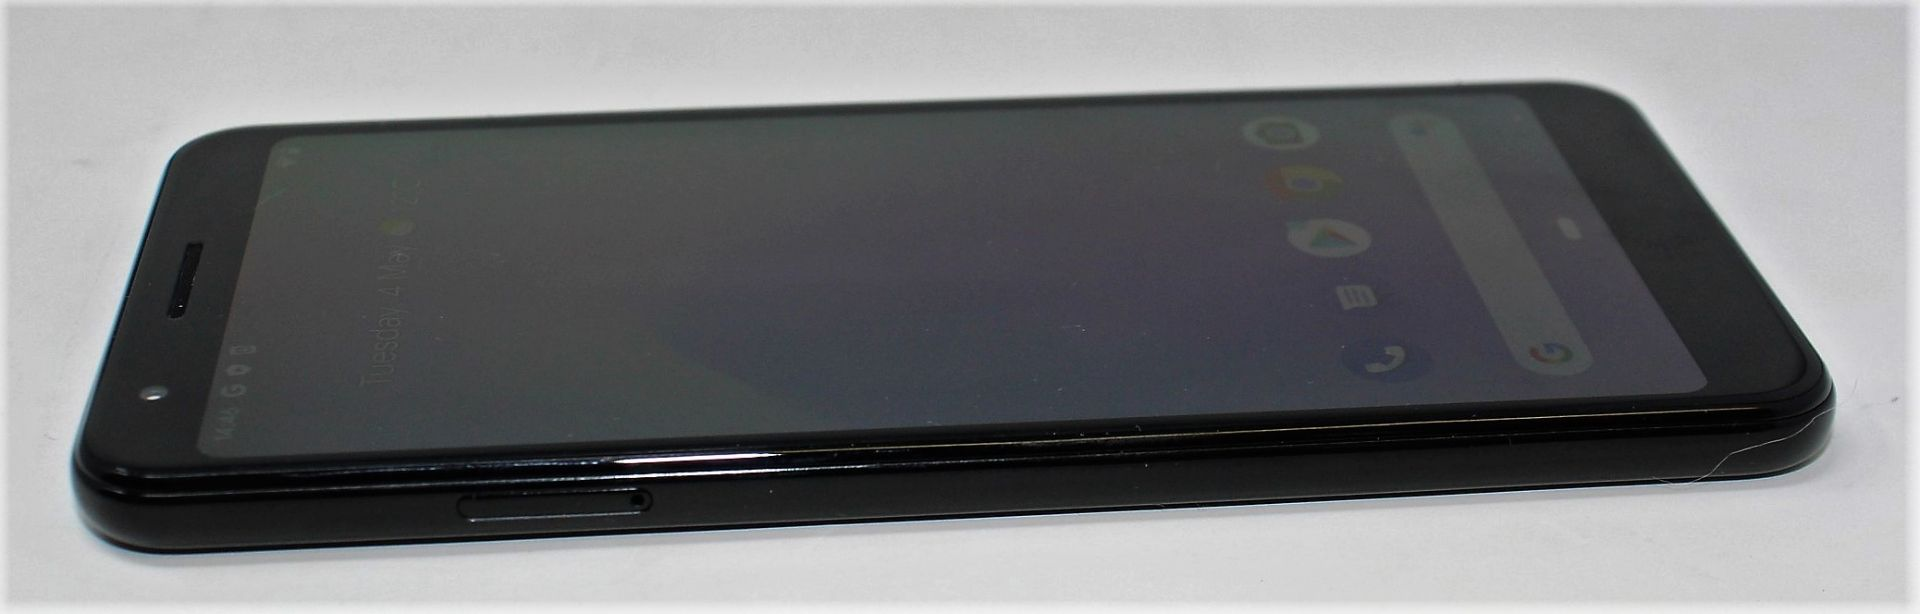 A pre-owned Google Pixel 3a G020G 64GB in Just Black (FRP clear) (Checkmend report ID: CM16922336- - Image 11 of 15